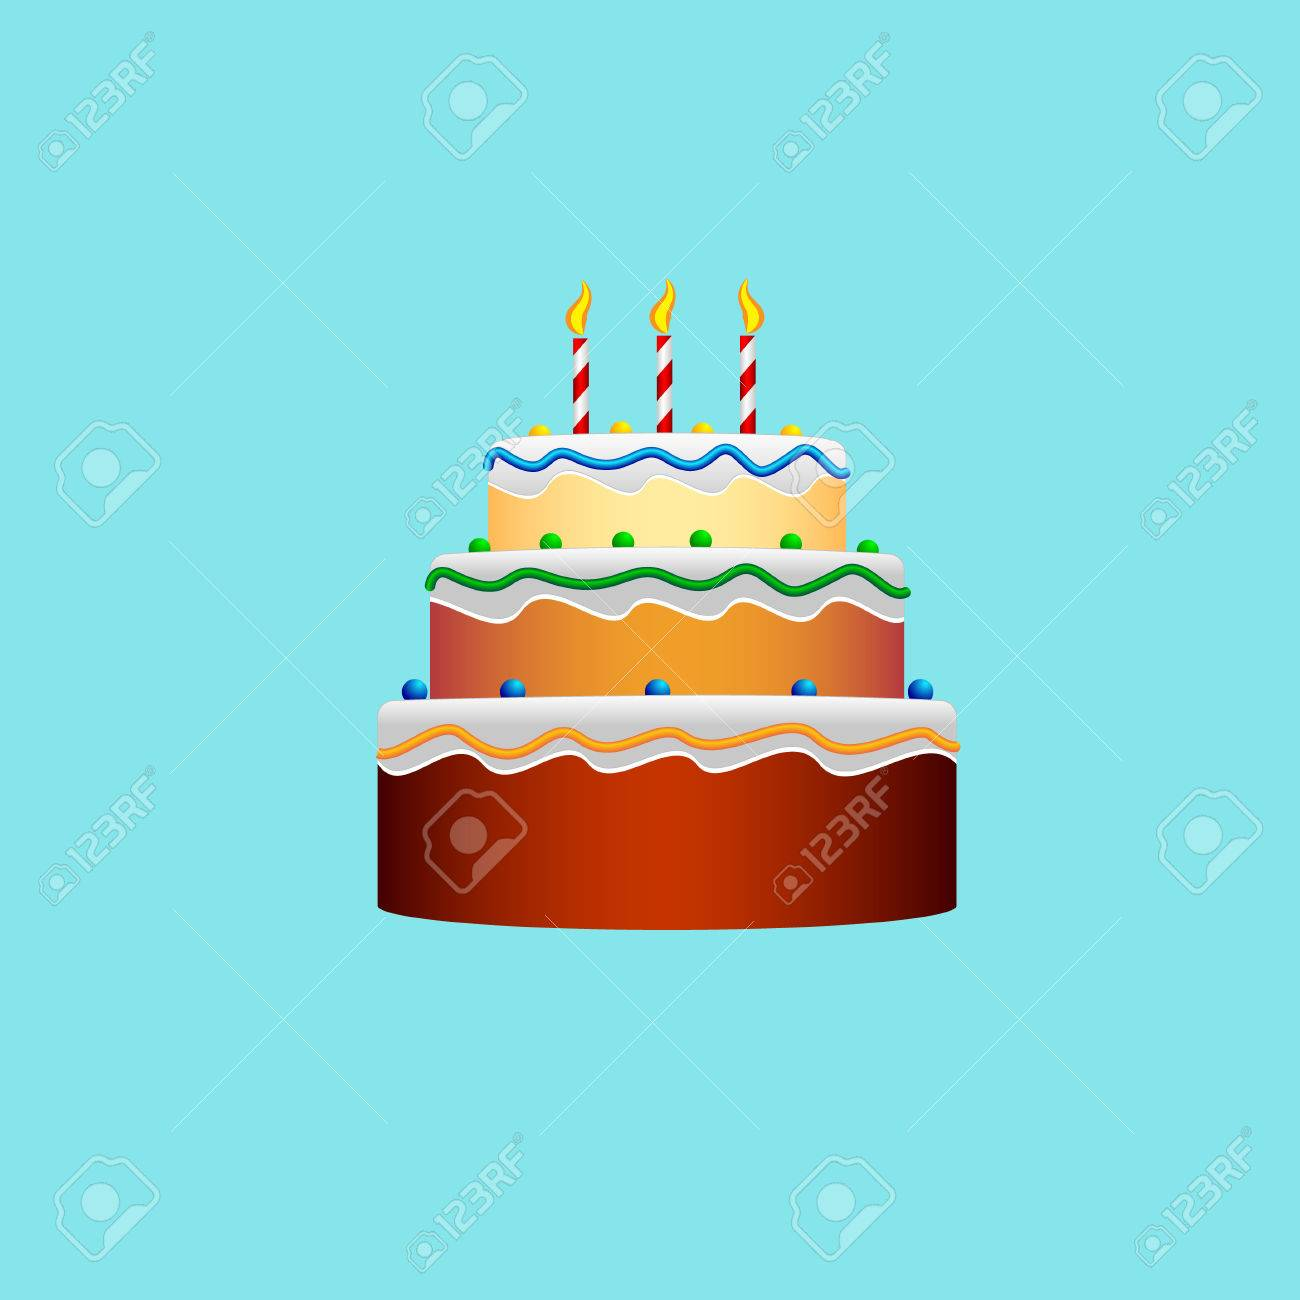 Colorful Birthday Cake In The Style Of A Flat Designicon With